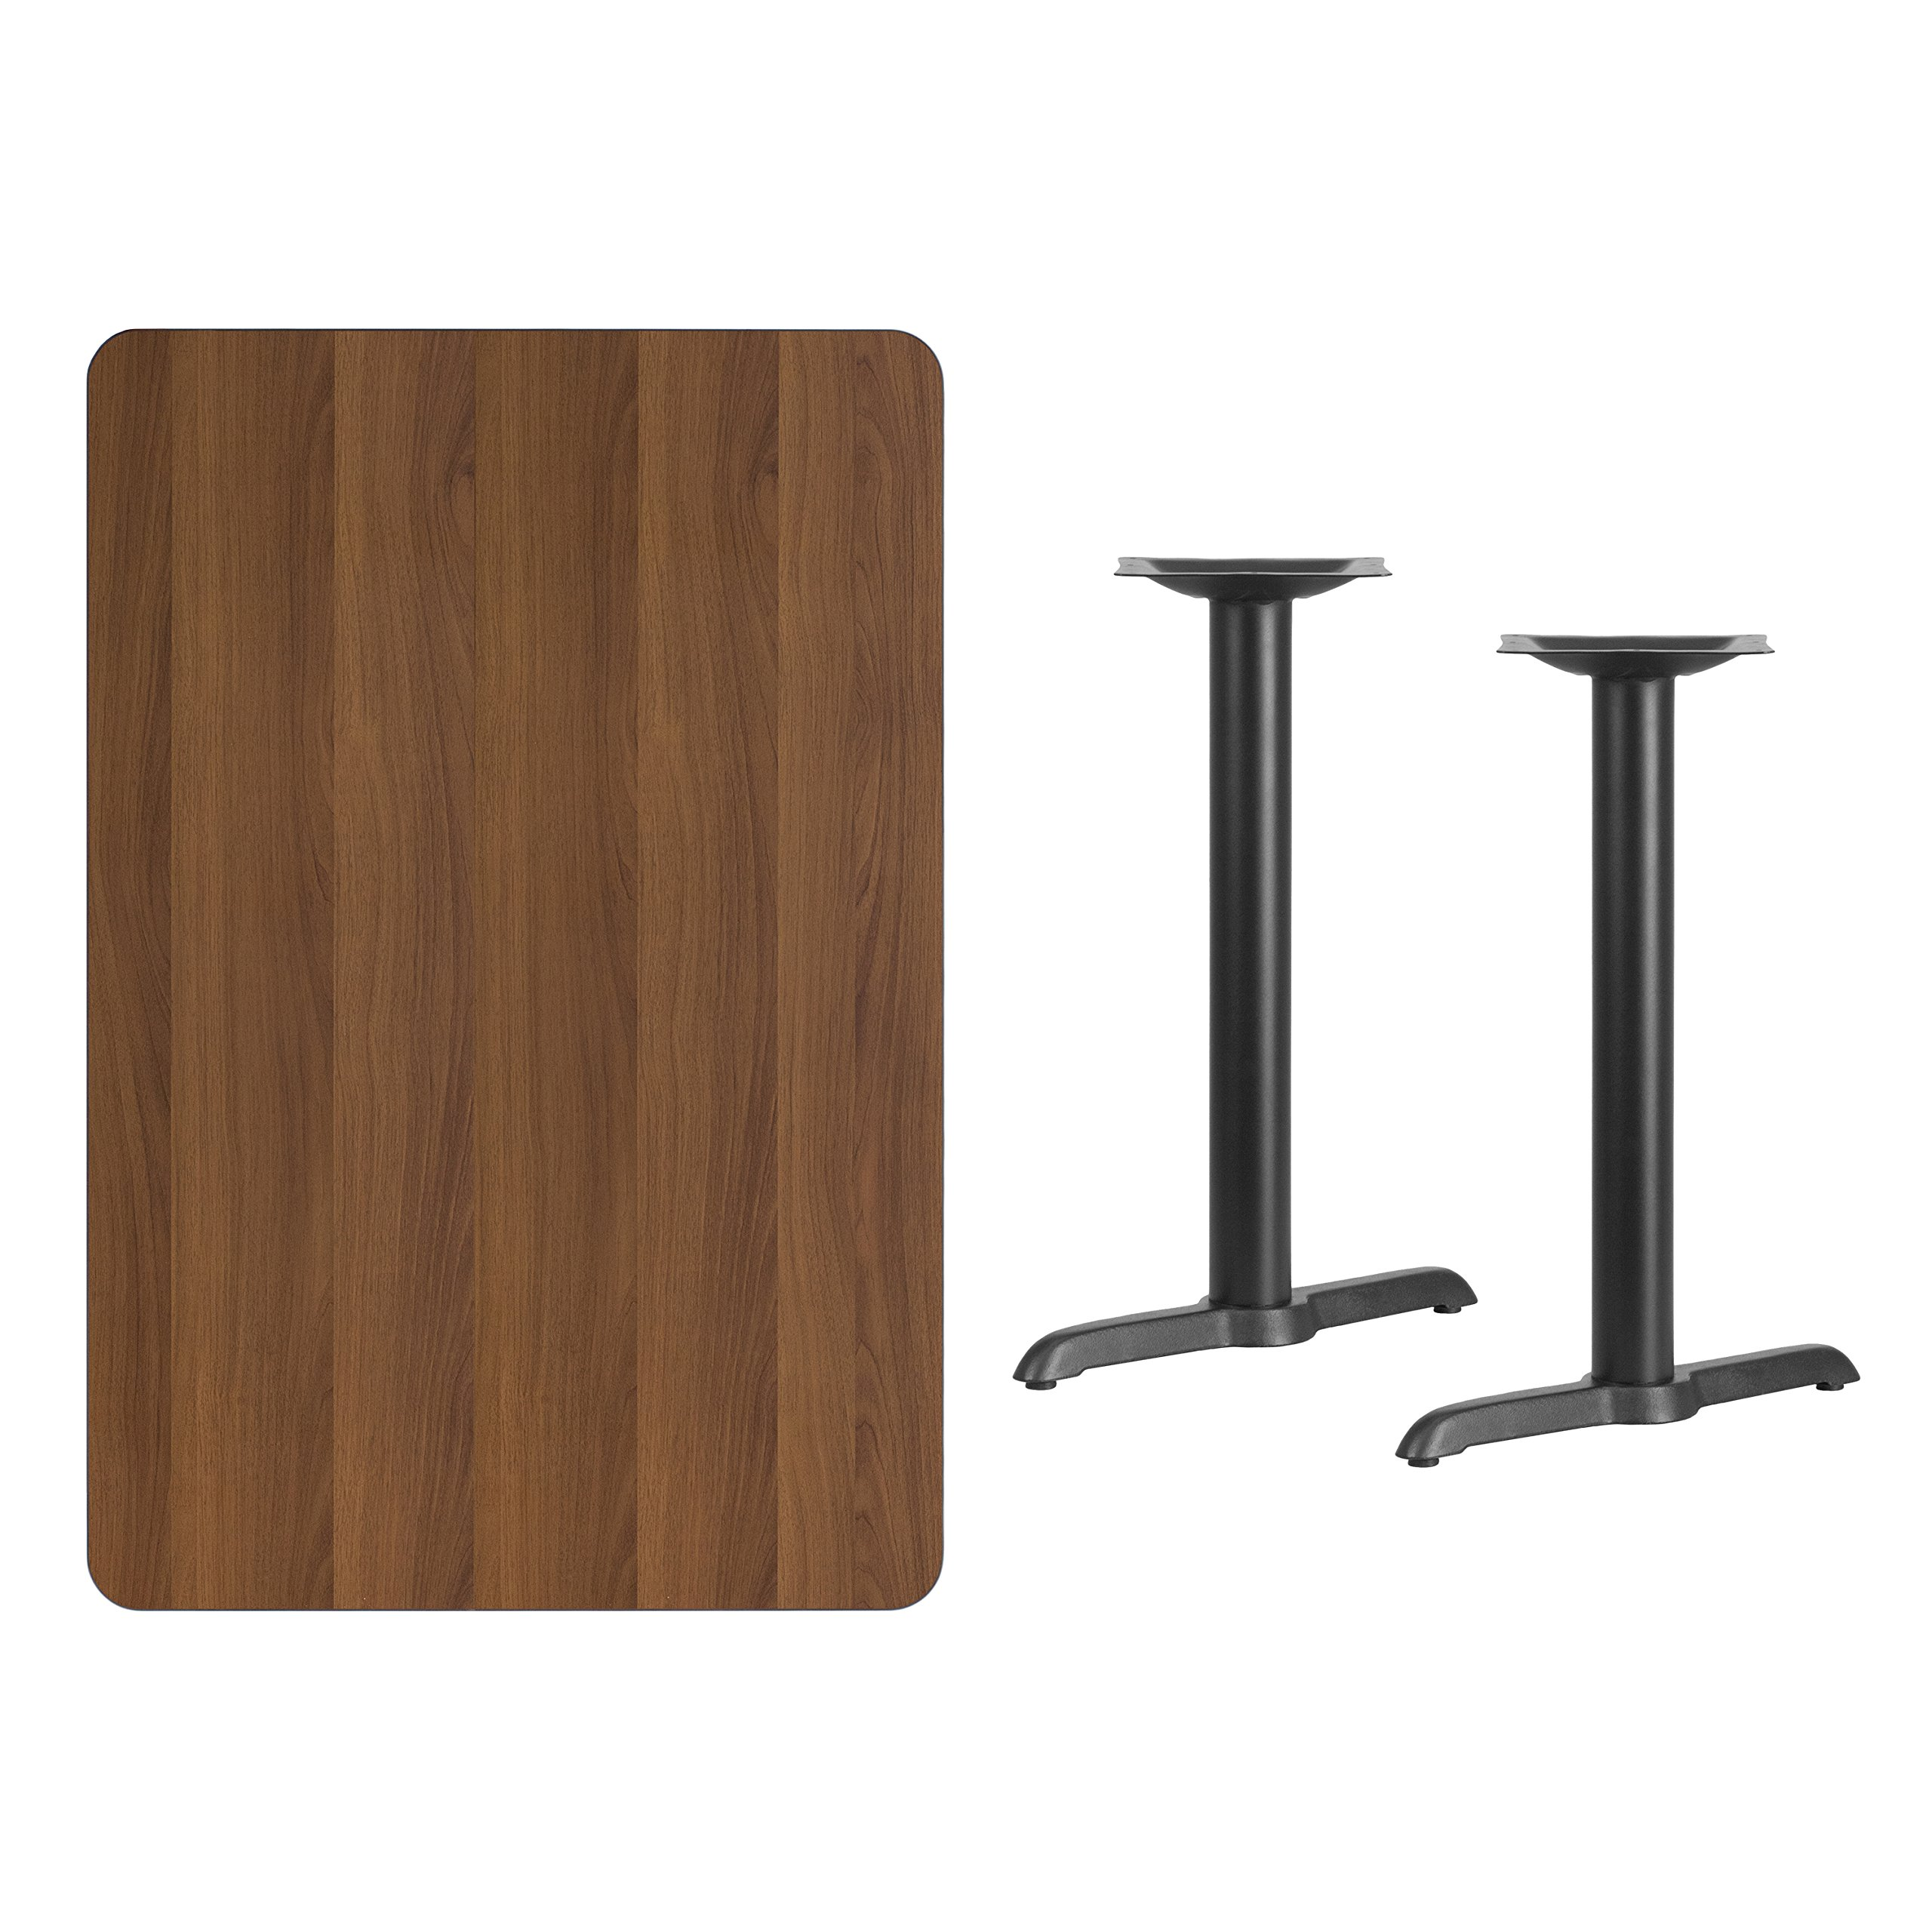 MFO 30'' x 45'' Rectangular Walnut Laminate Table Top with 5'' x 22'' Table Height Bases by My Friendly Office